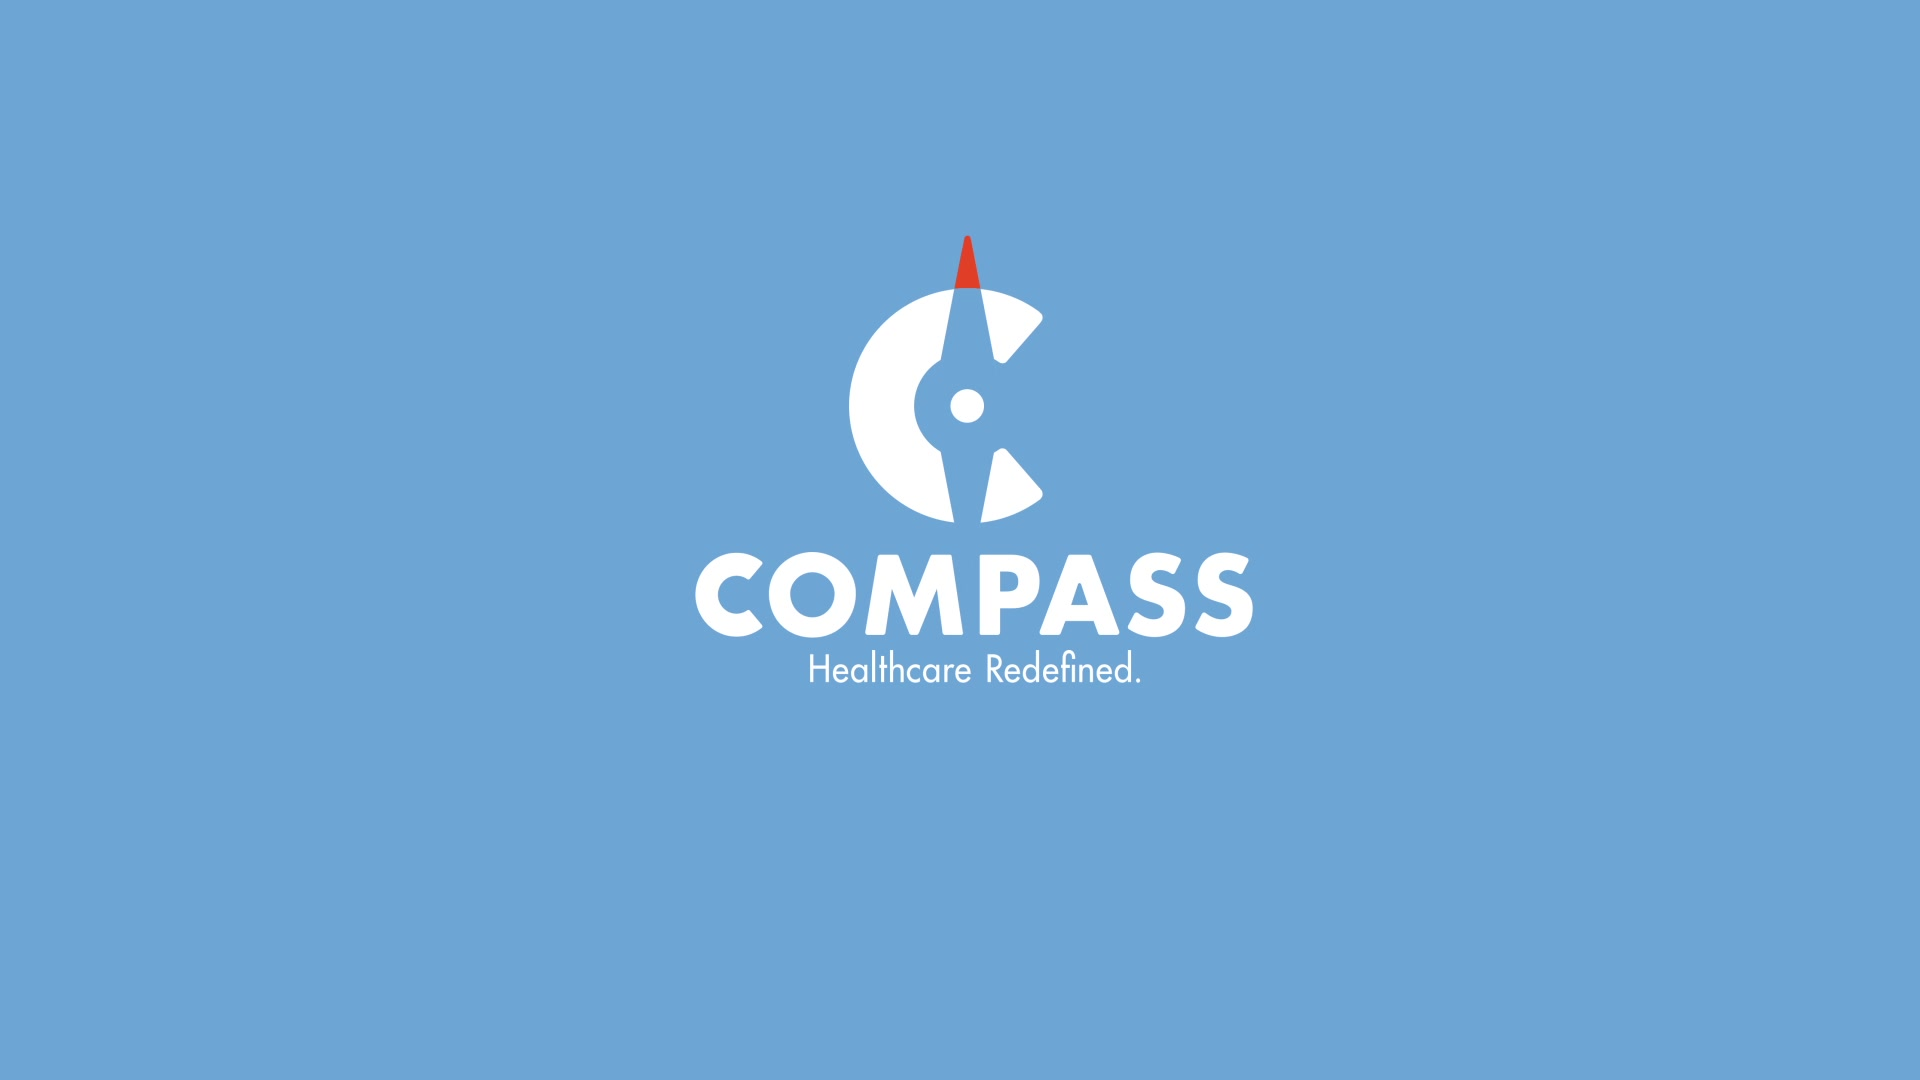 Compass Clothing Brand